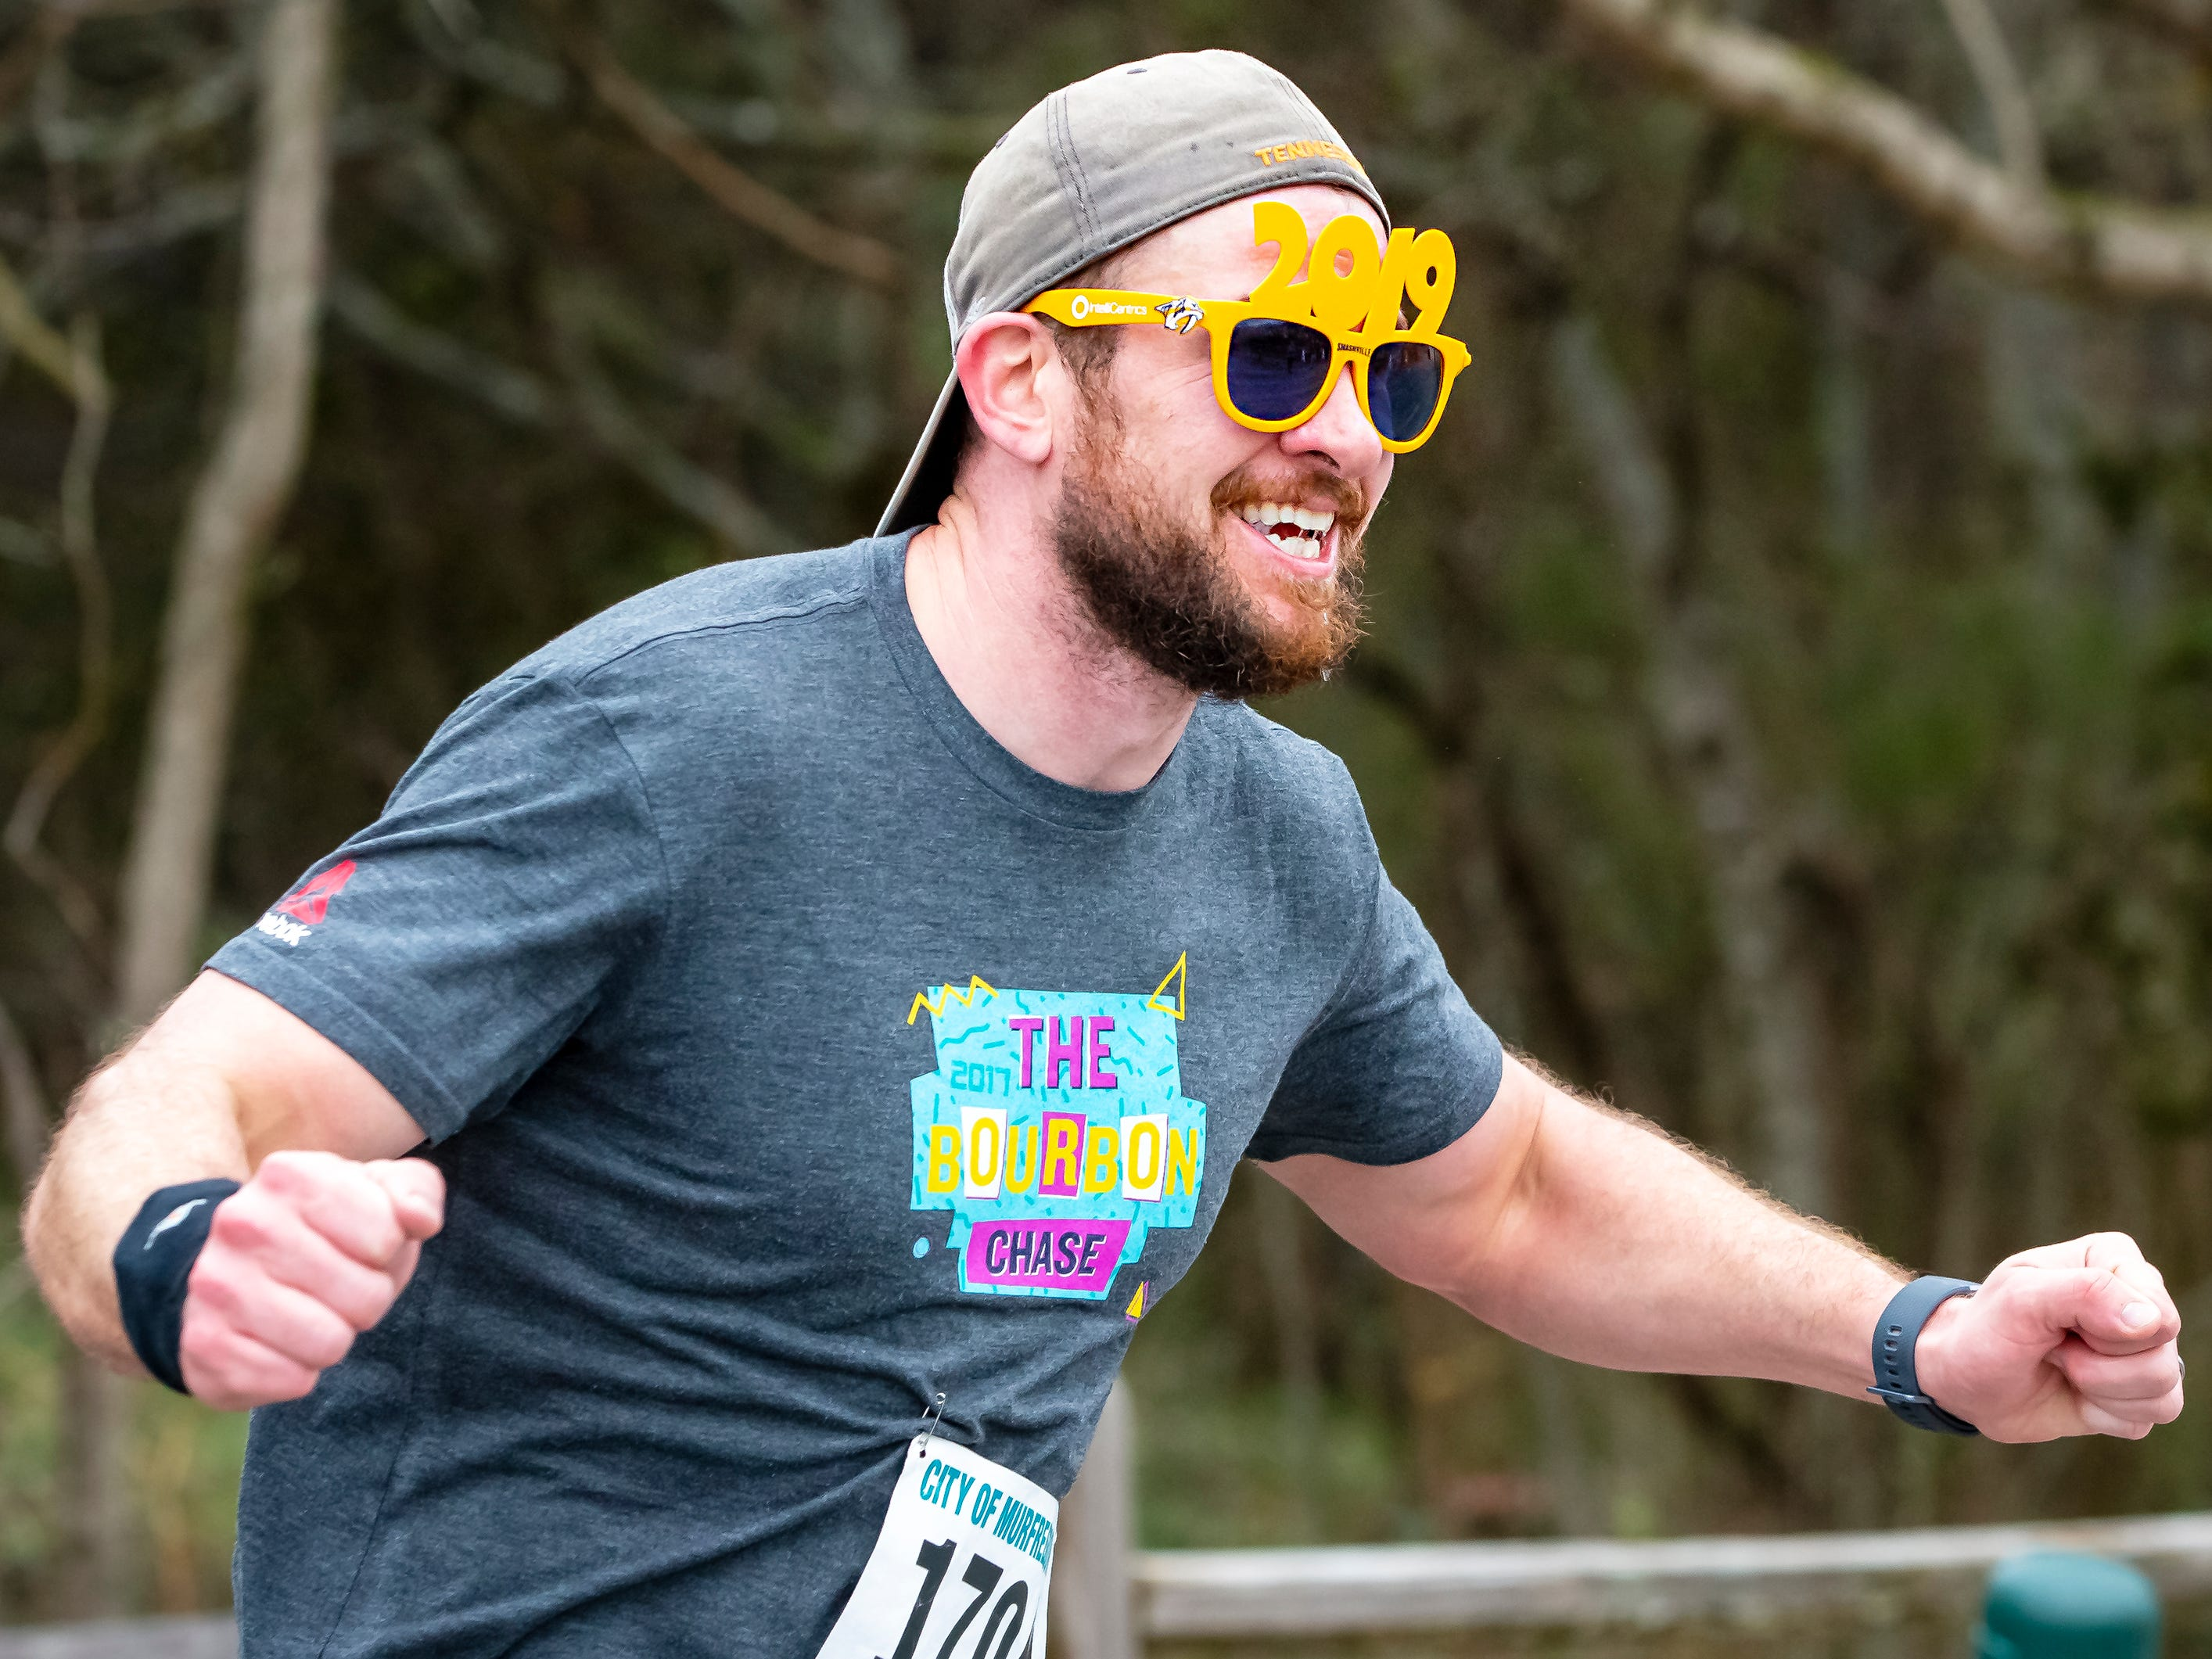 George Mead nears the finish line at the 2019 New Year's Day 5K event held at Old Fort Park.